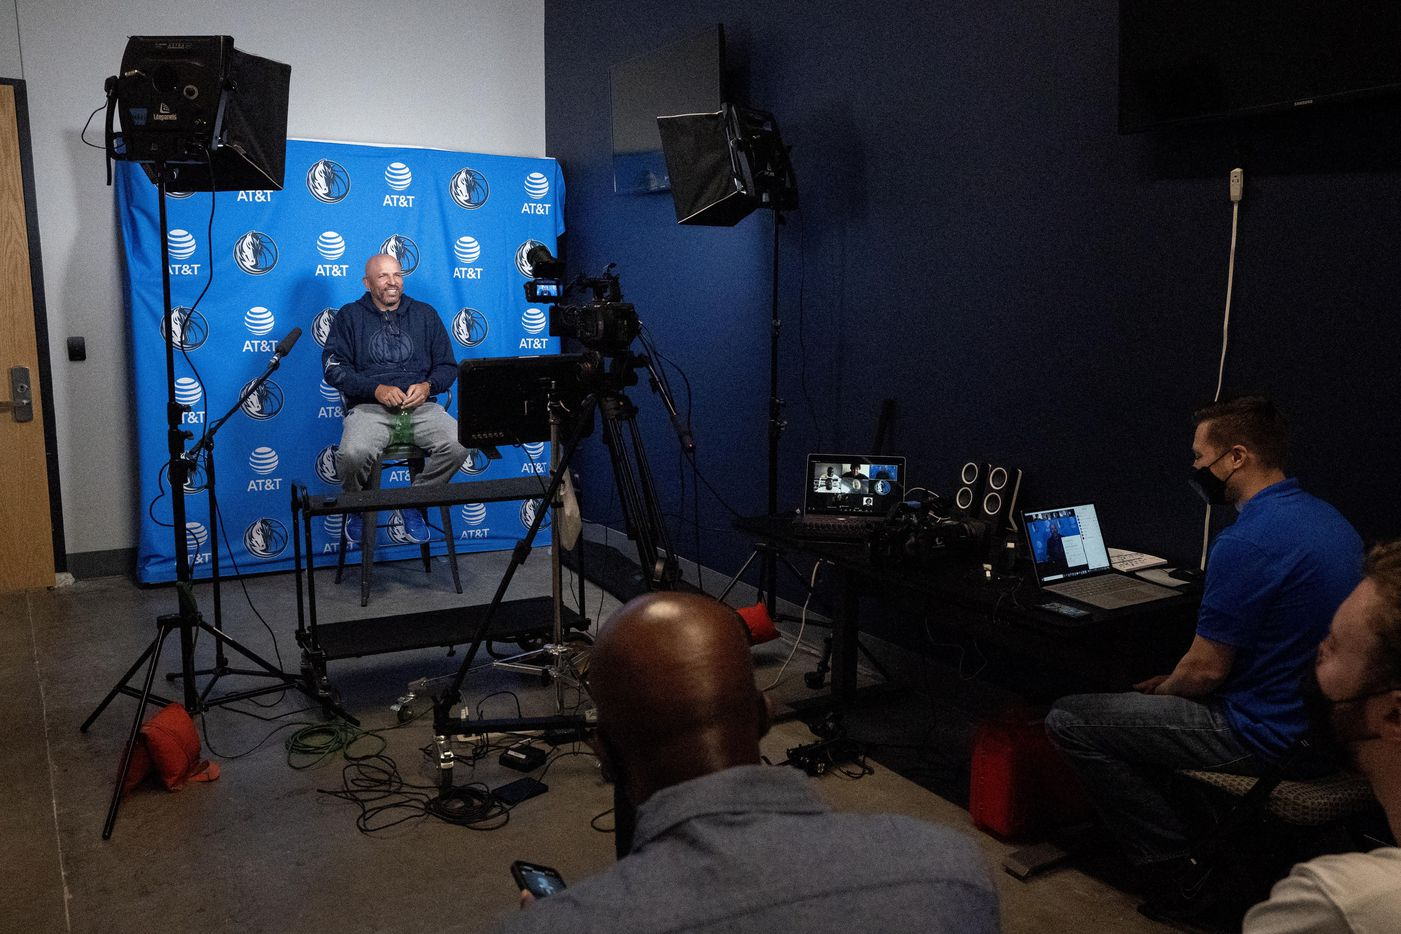 Dallas Mavericks head coach Jason Kidd speaks to the media during the first practice of training camp Tuesday, September 28, 2021 at the Dallas Mavericks Training Center in Dallas. (Jeffrey McWhorter/Special Contributor)